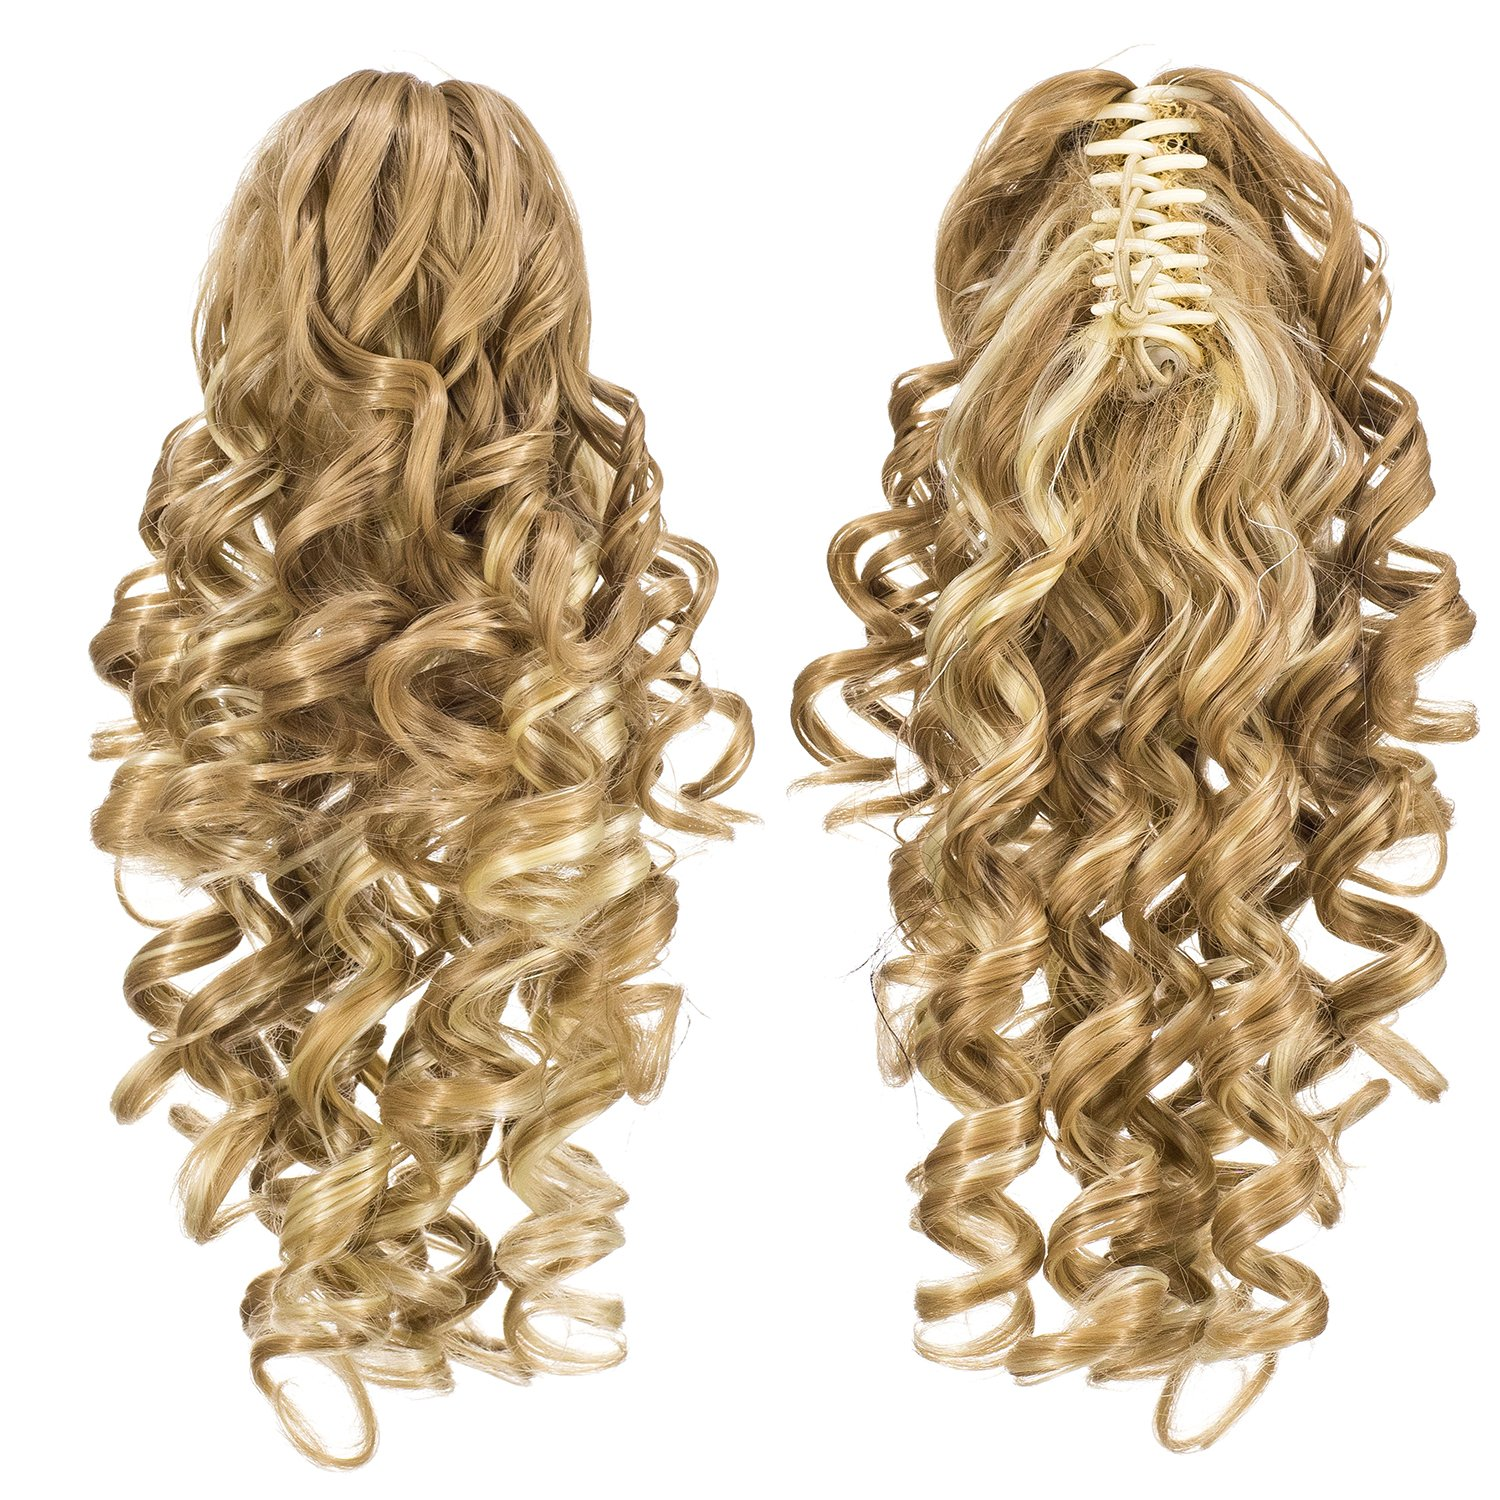 SWACC 12-Inch Short Screw Curls Claw Clip Ponytail Extensions Synthetic Clip in Drawstring Curly Ponytail Hairpiece Jaw Clip Hair Extension (Beige/Blonde Mixed-24H613#) by SWACC